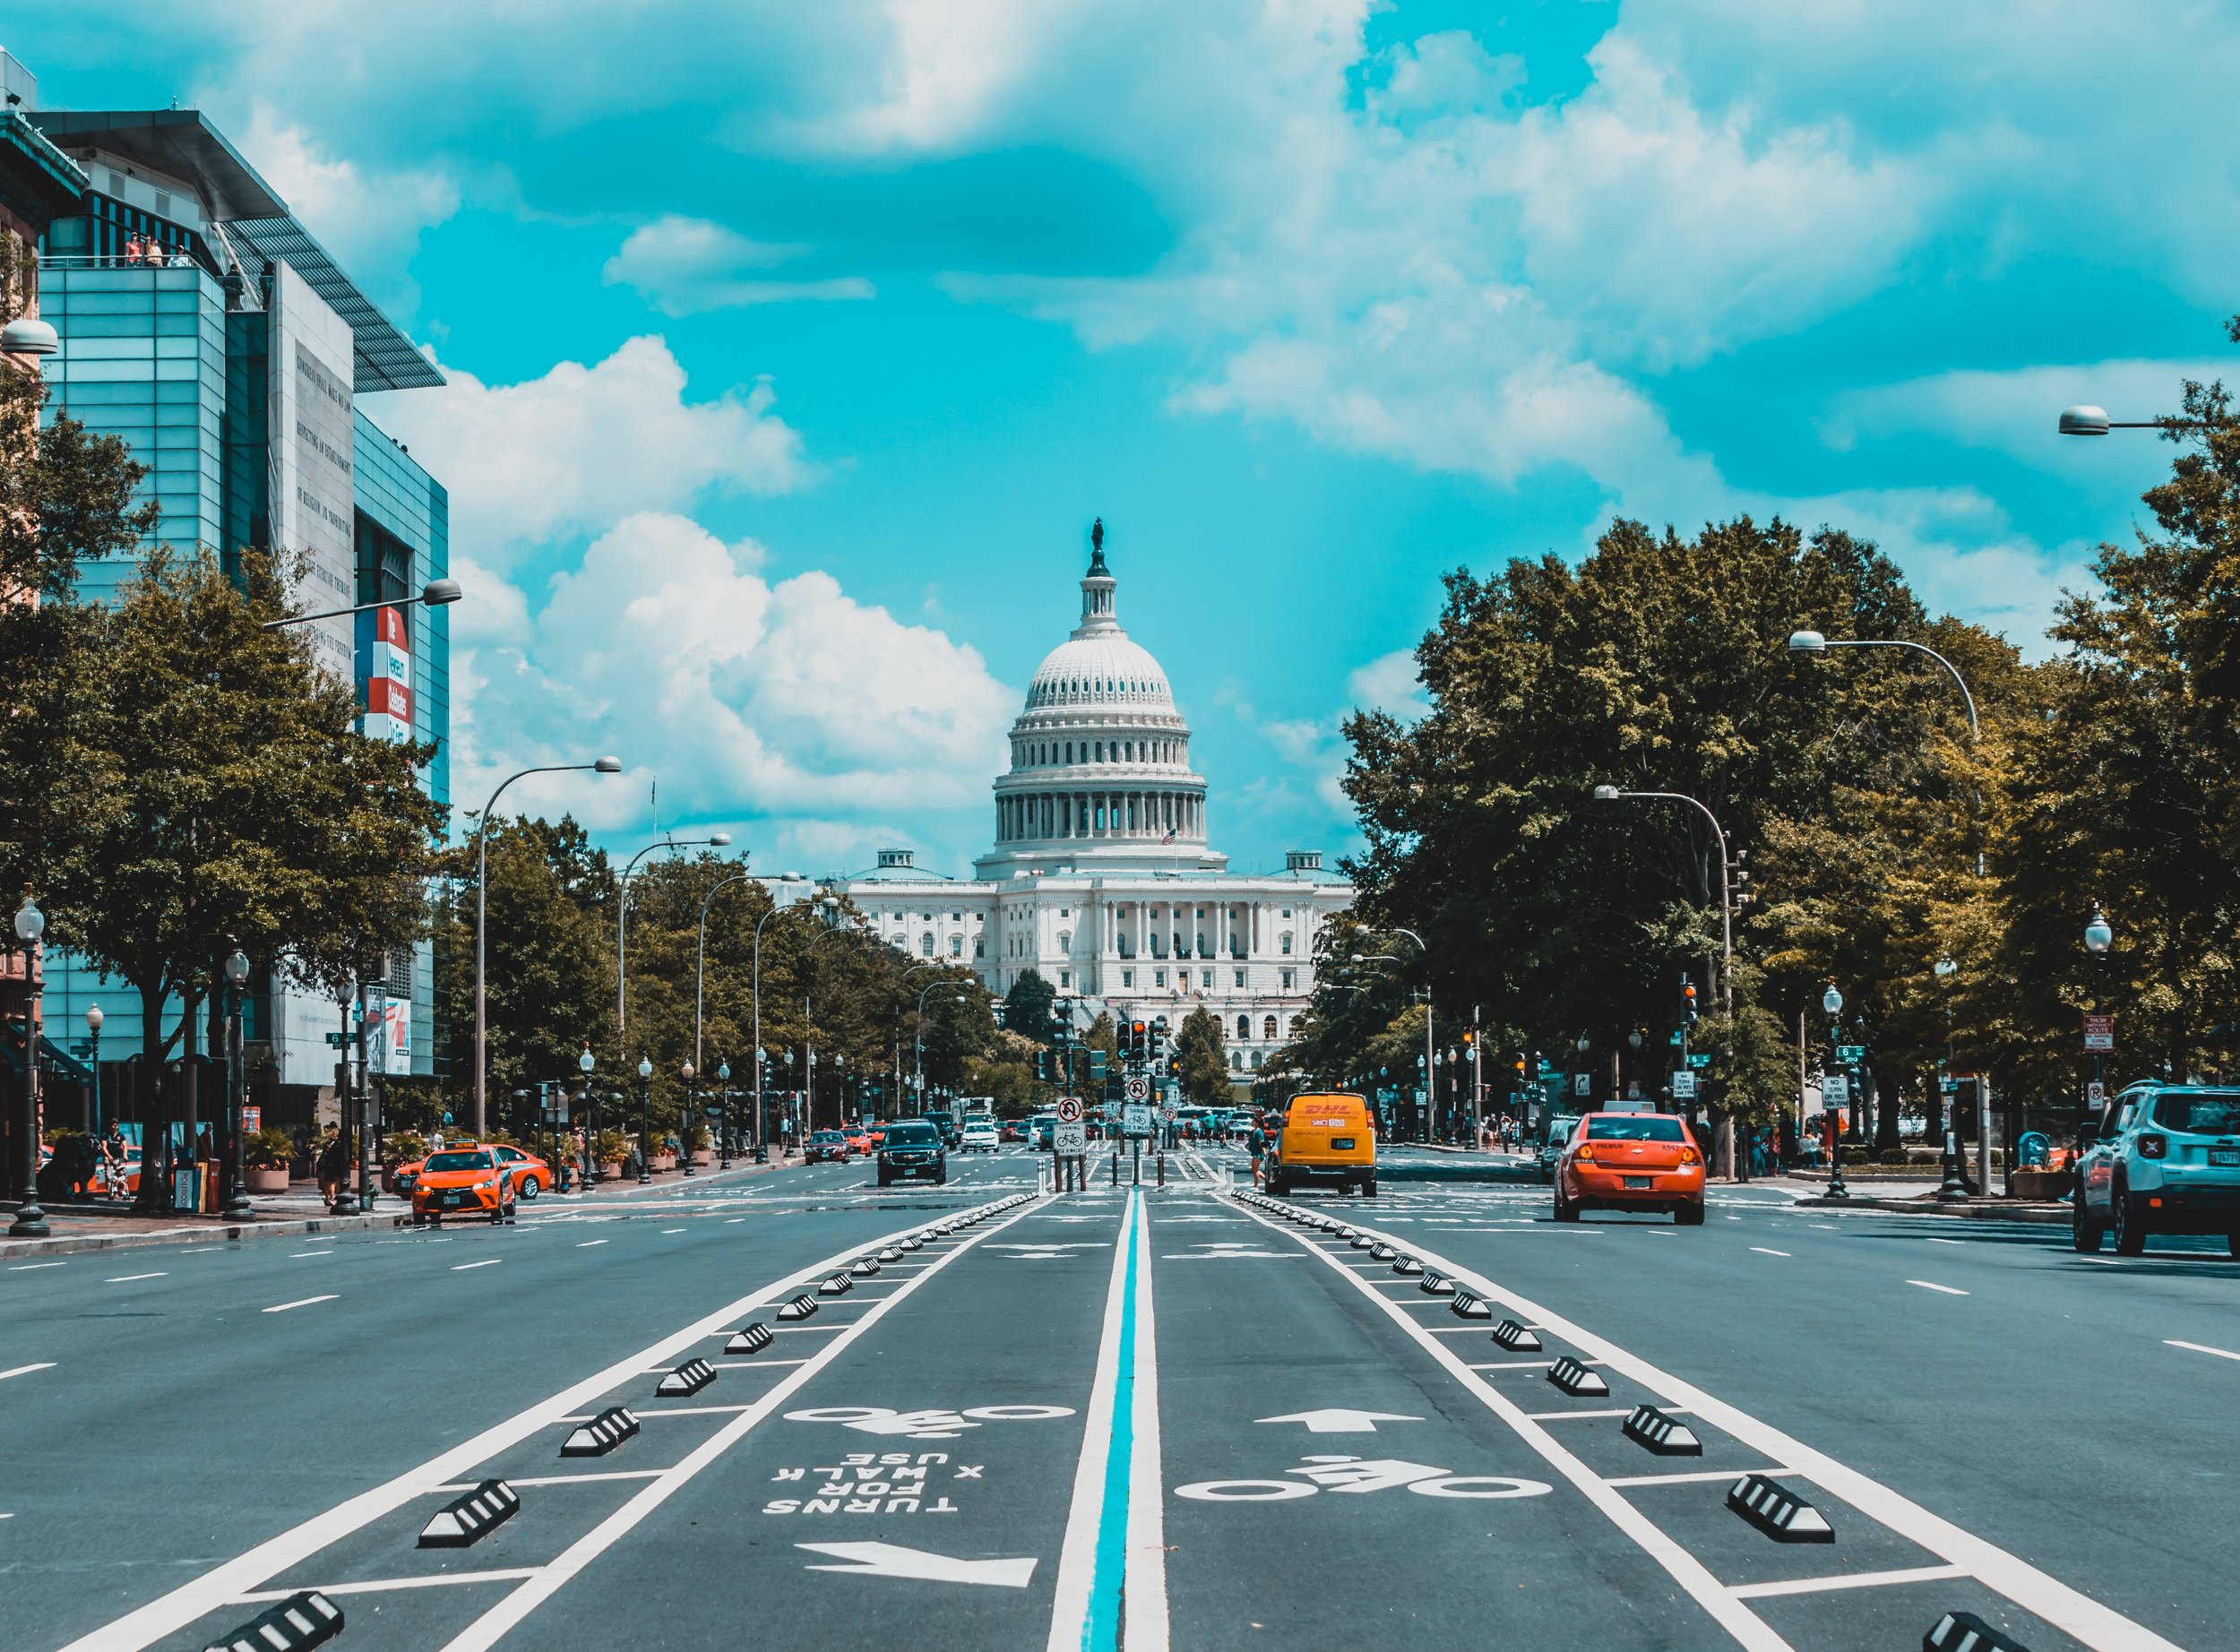 Pennsylvania Avenue, Washington, D.C.  Photo by  Jorge Alcala  on  Unsplash